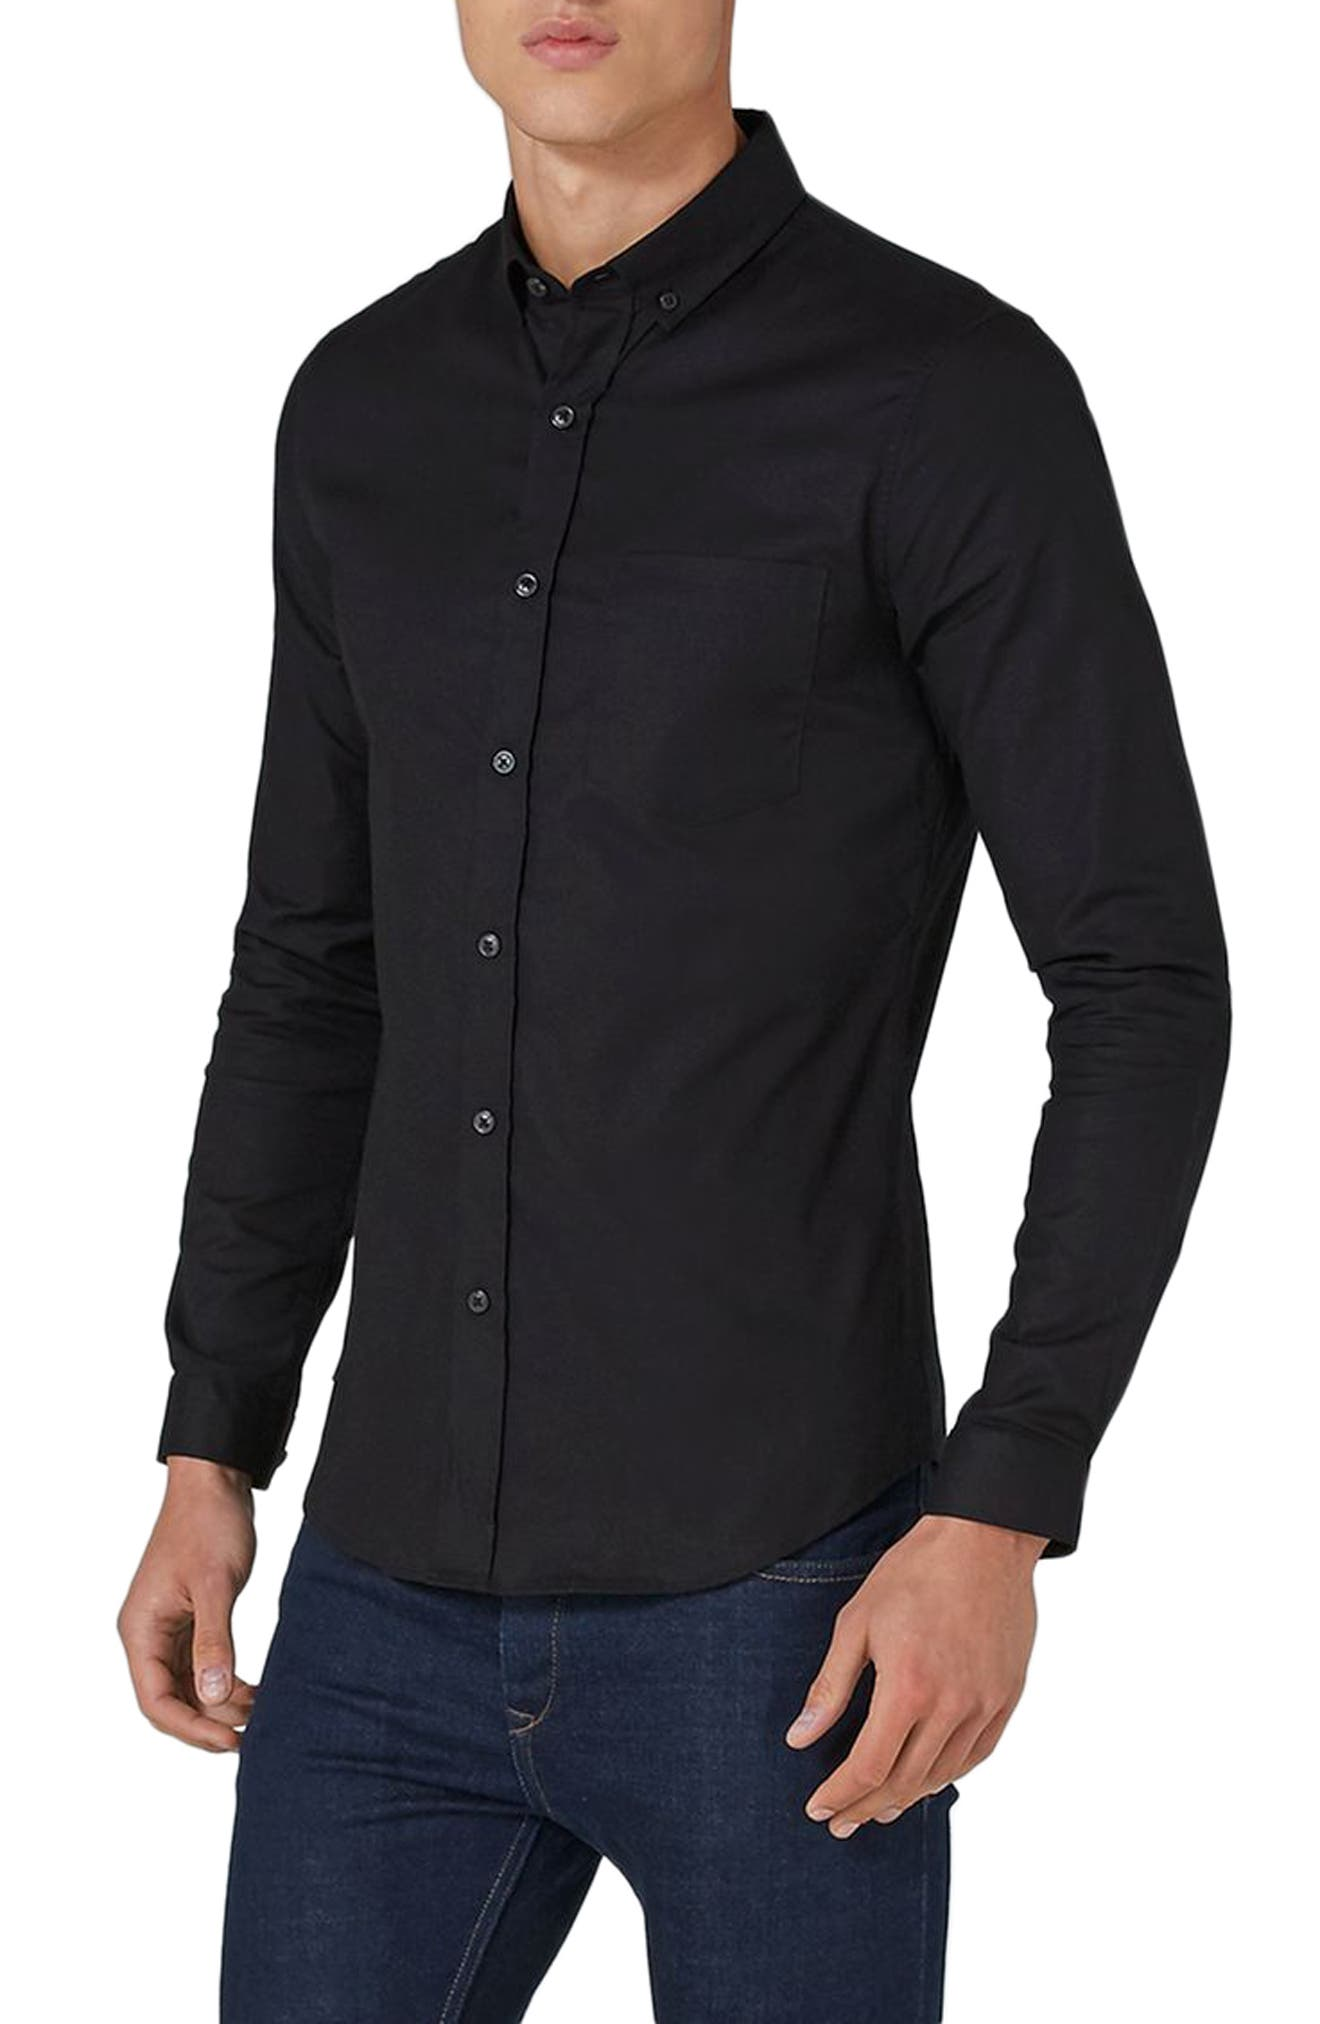 Muscle Fit Oxford Shirt,                         Main,                         color, Black